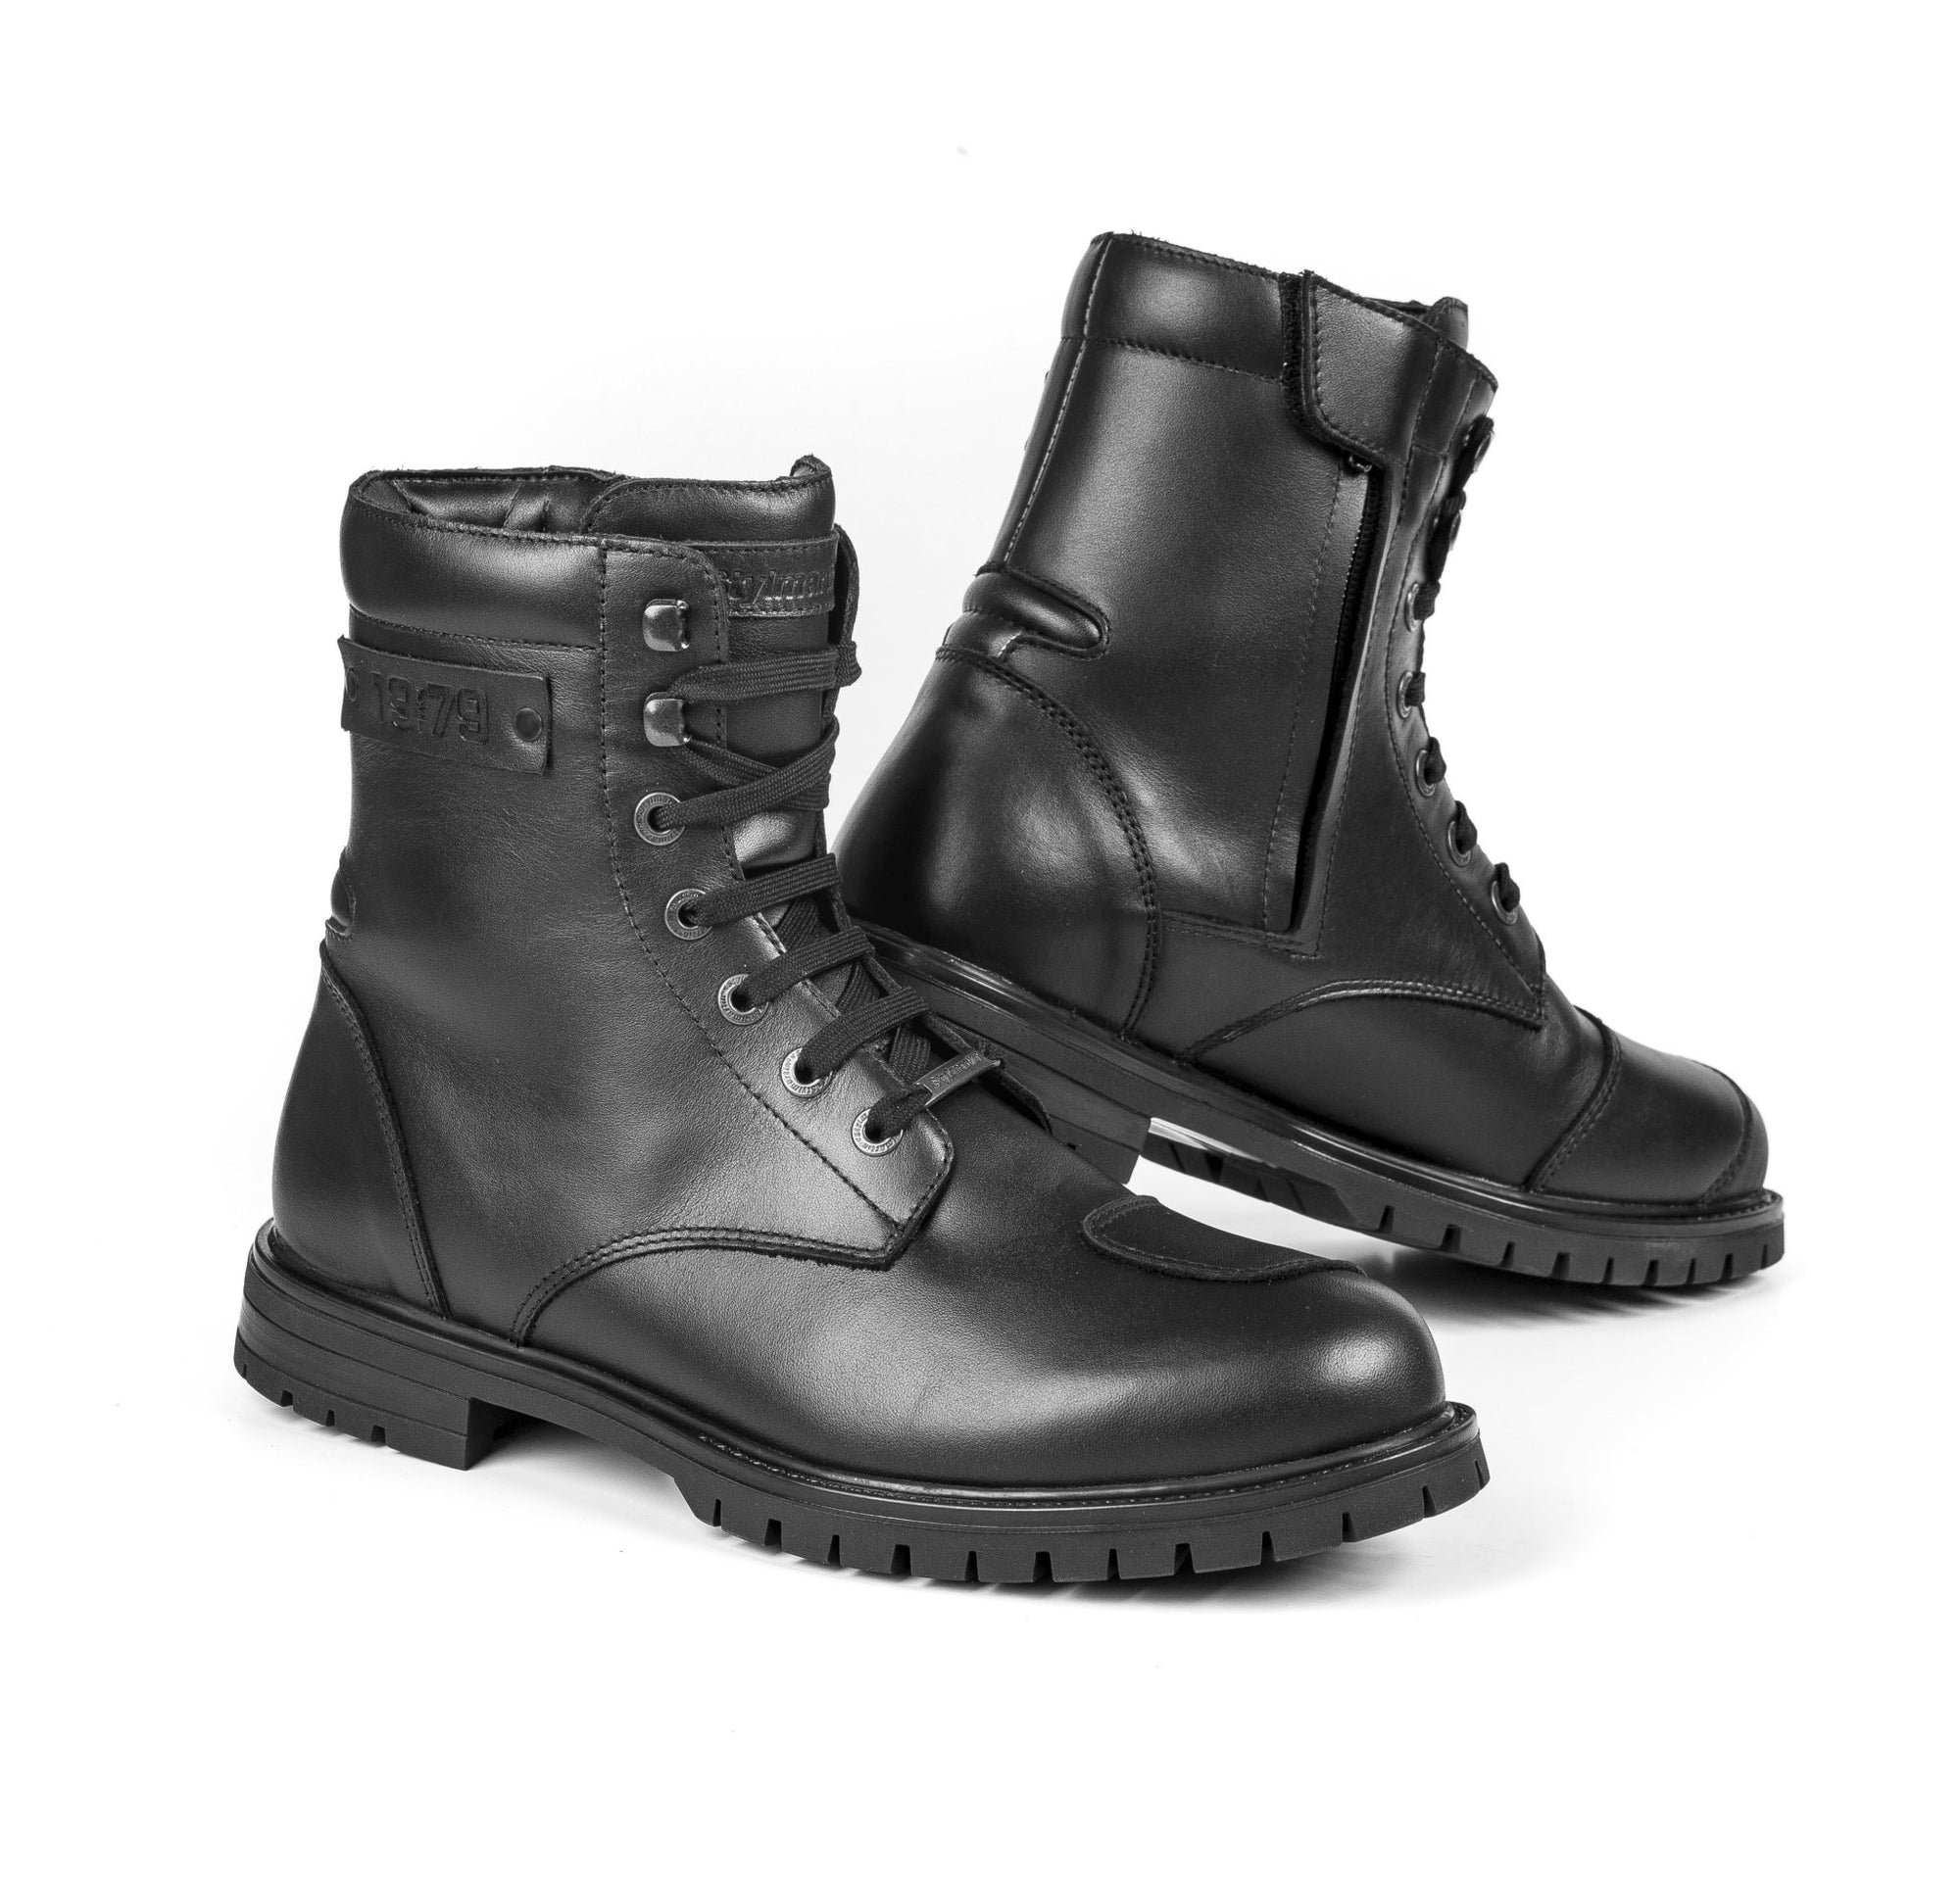 Stylmartin - Stylmartin Jack WP Urban in Black - Boots - Salt Flats Clothing